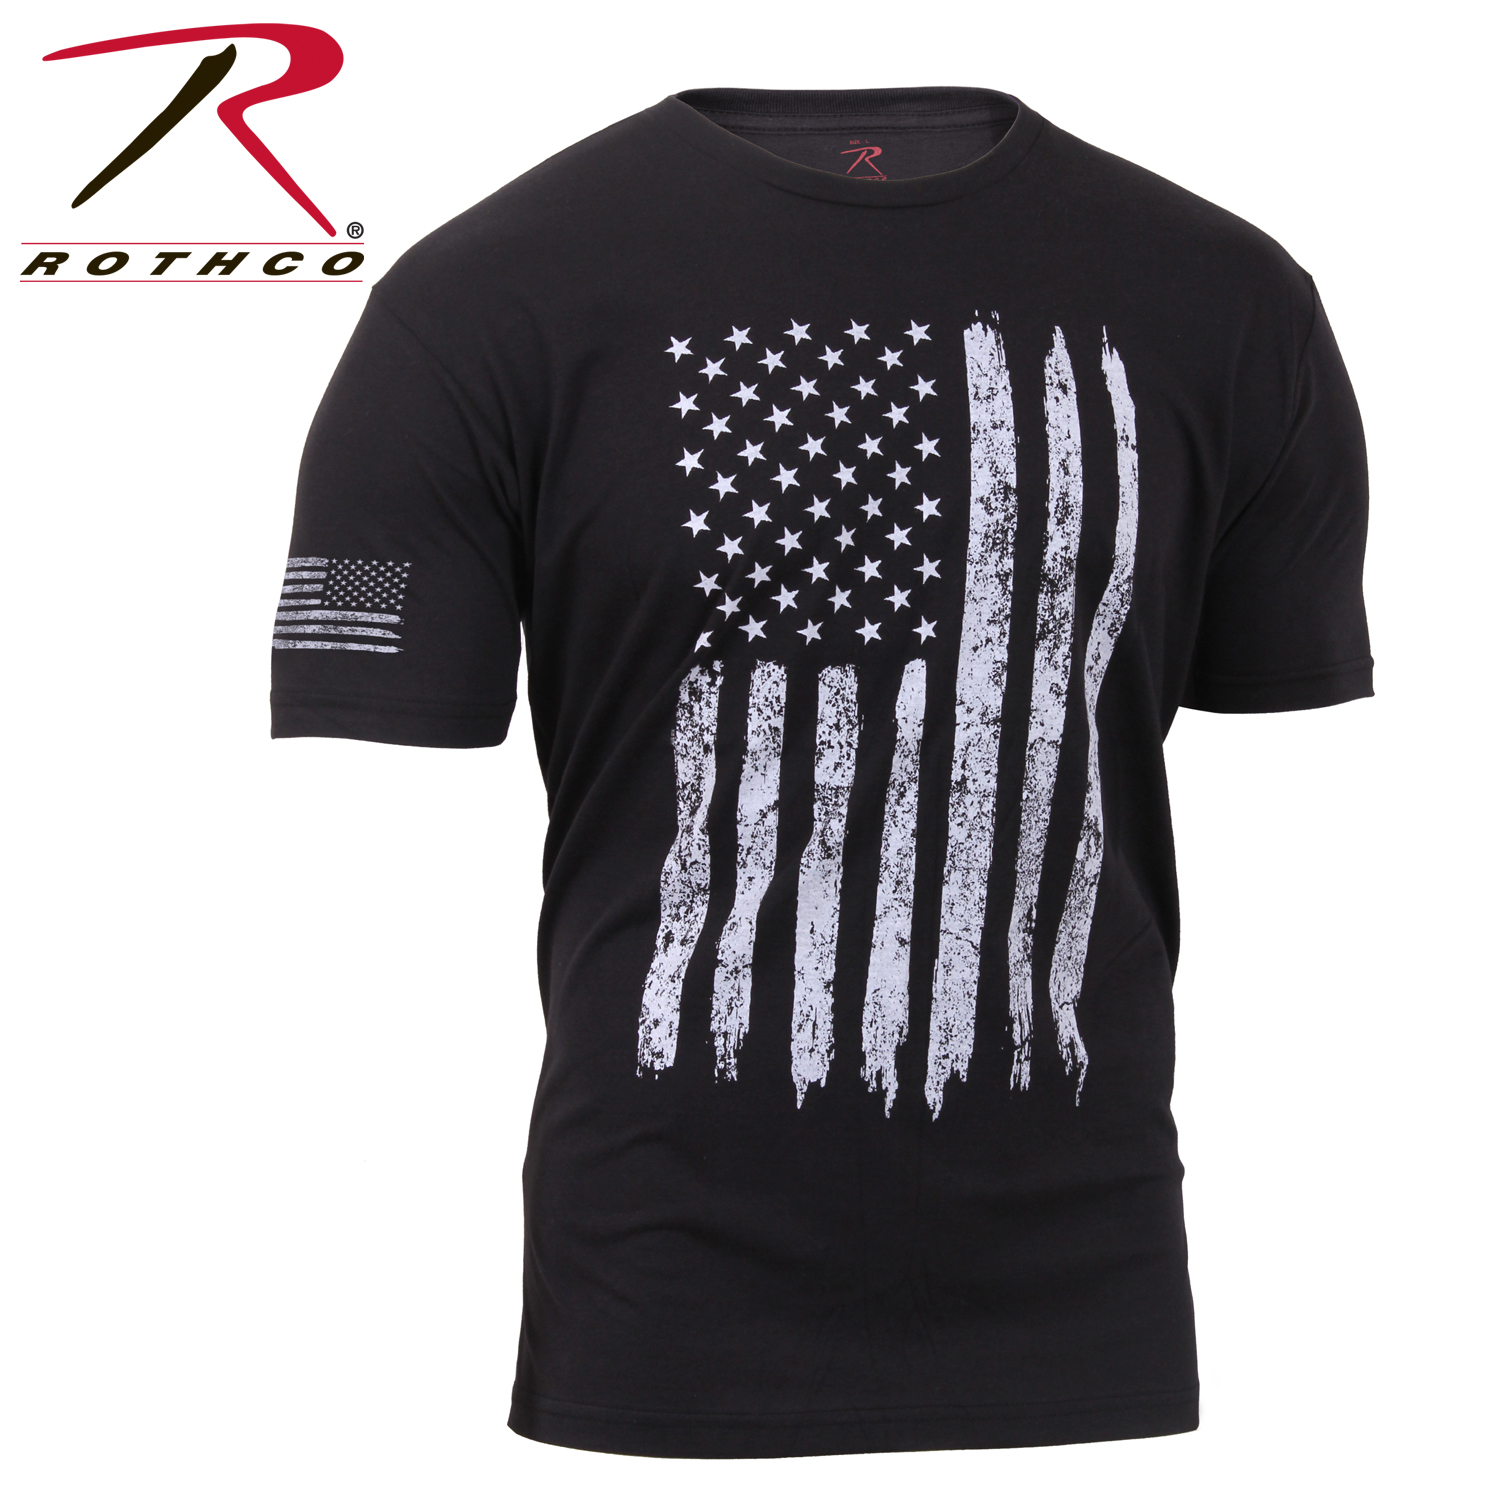 d8080a8234 Rothco Distressed US Flag Athletic Fit T-Shirt